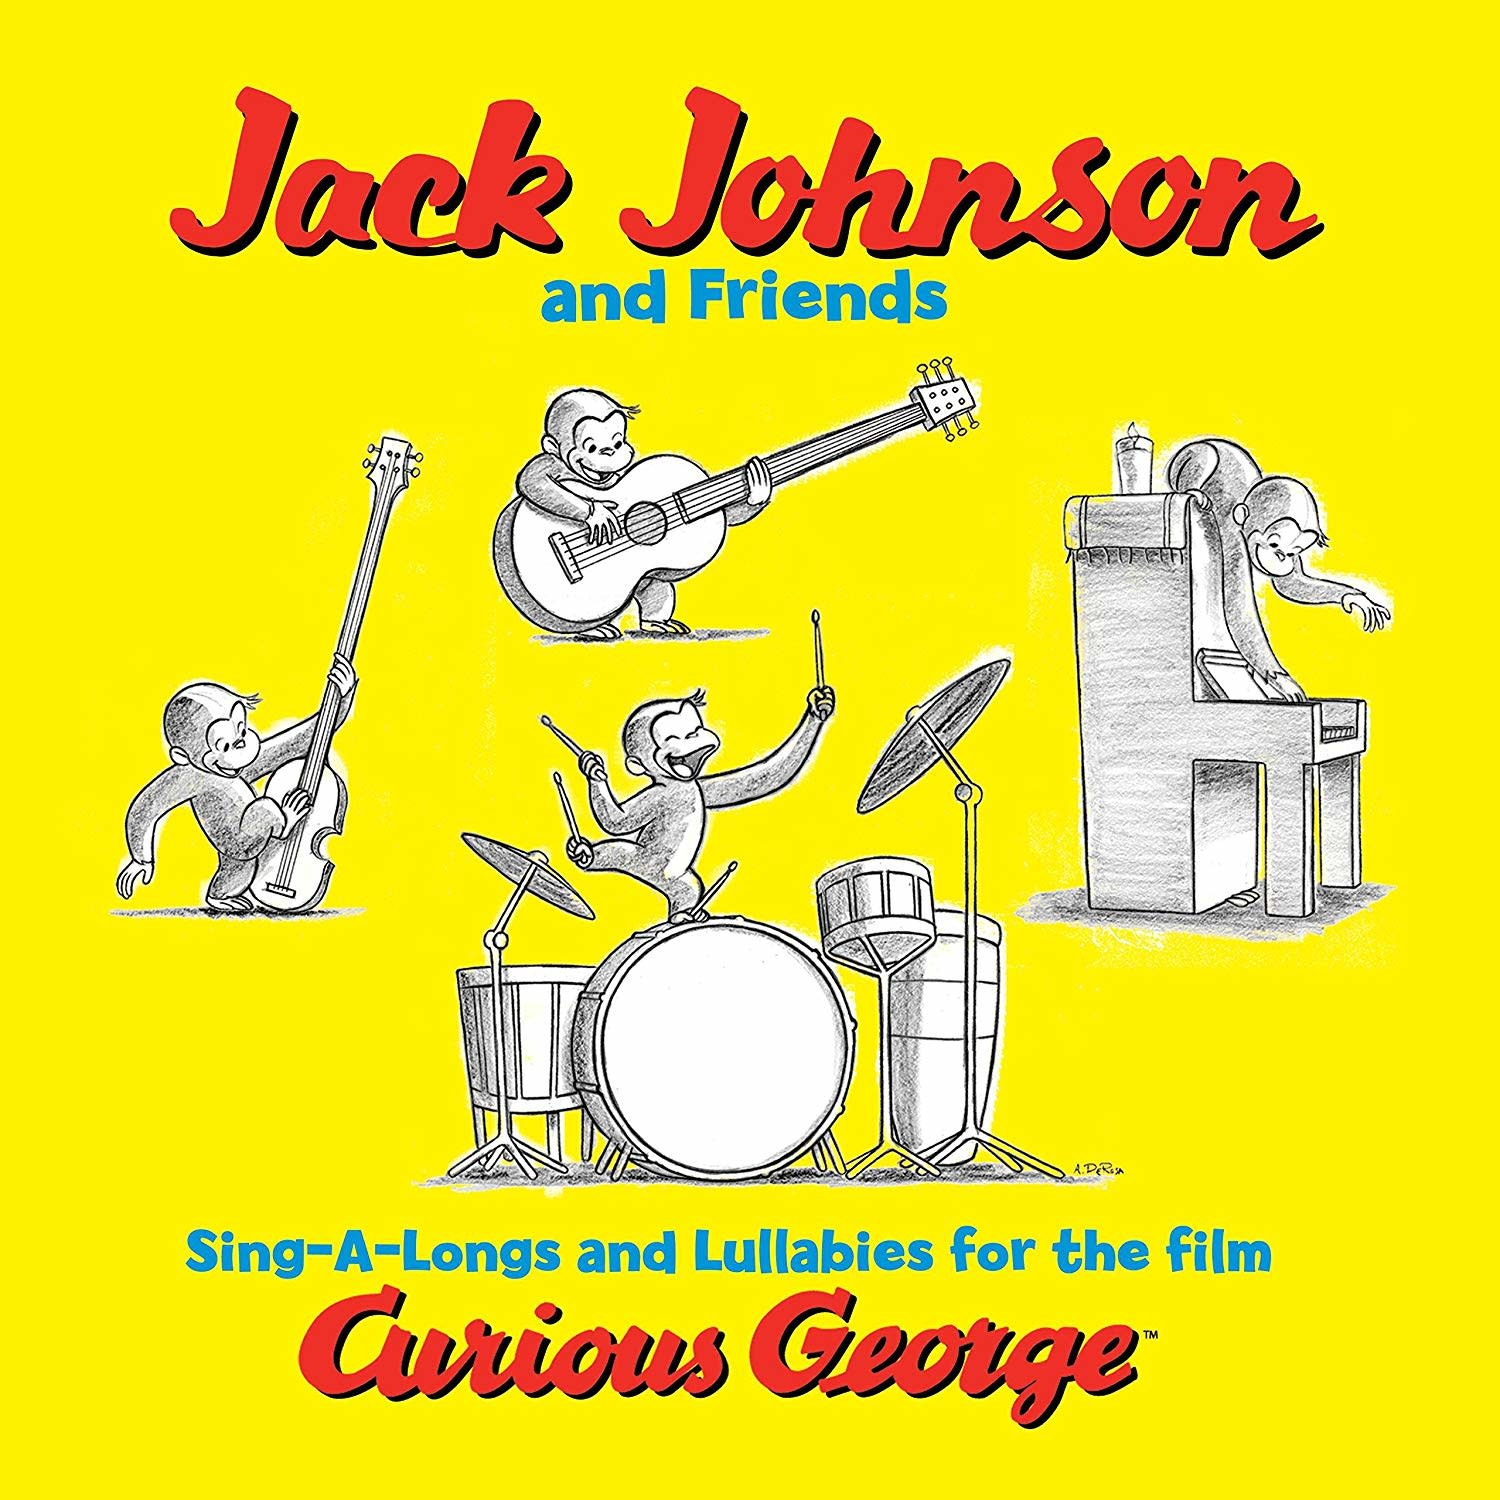 Jack Johnson And Friends – Sing-A-Longs And Lullabies For The Film Curious George